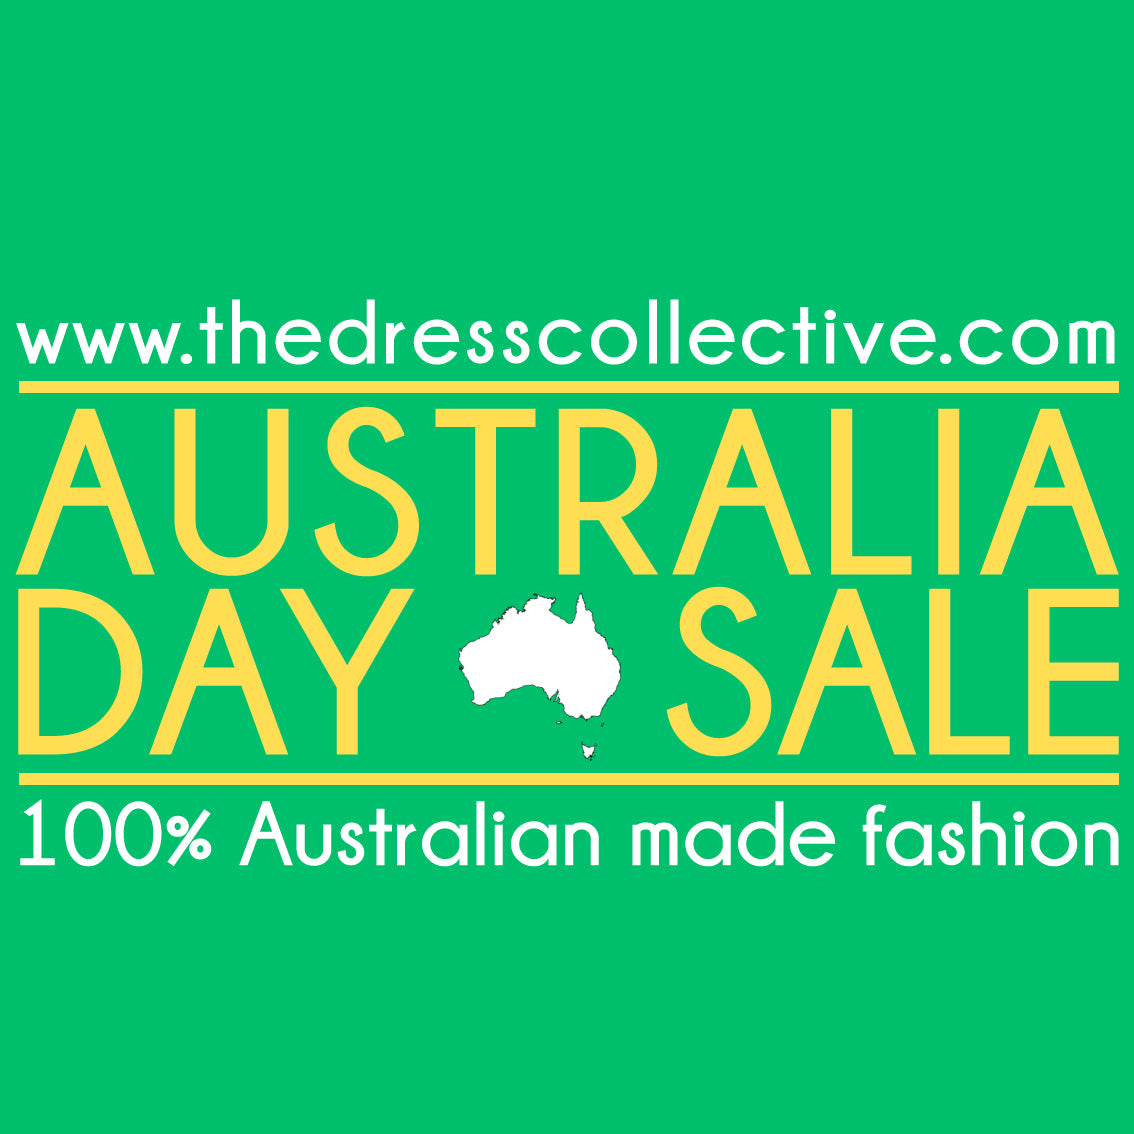 CELEBRATE AUSTRALIA DAY WITH 20% OFF EVERYTHING AT THE DRESS COLLECTIVE